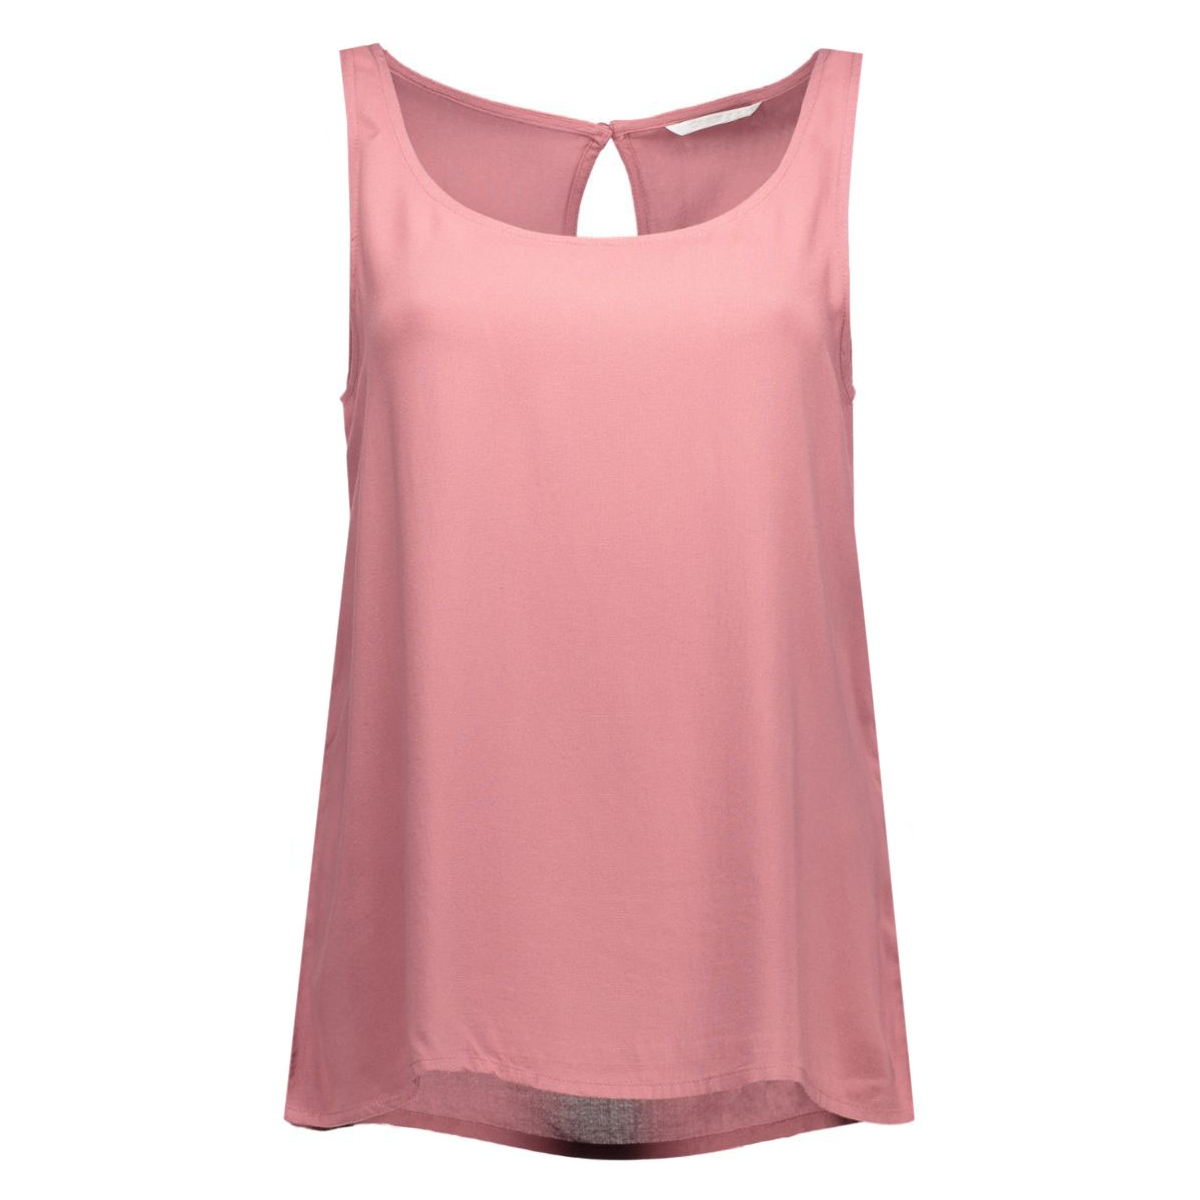 onlgeggo tank top noos wvn 15102004 only top mesa rose